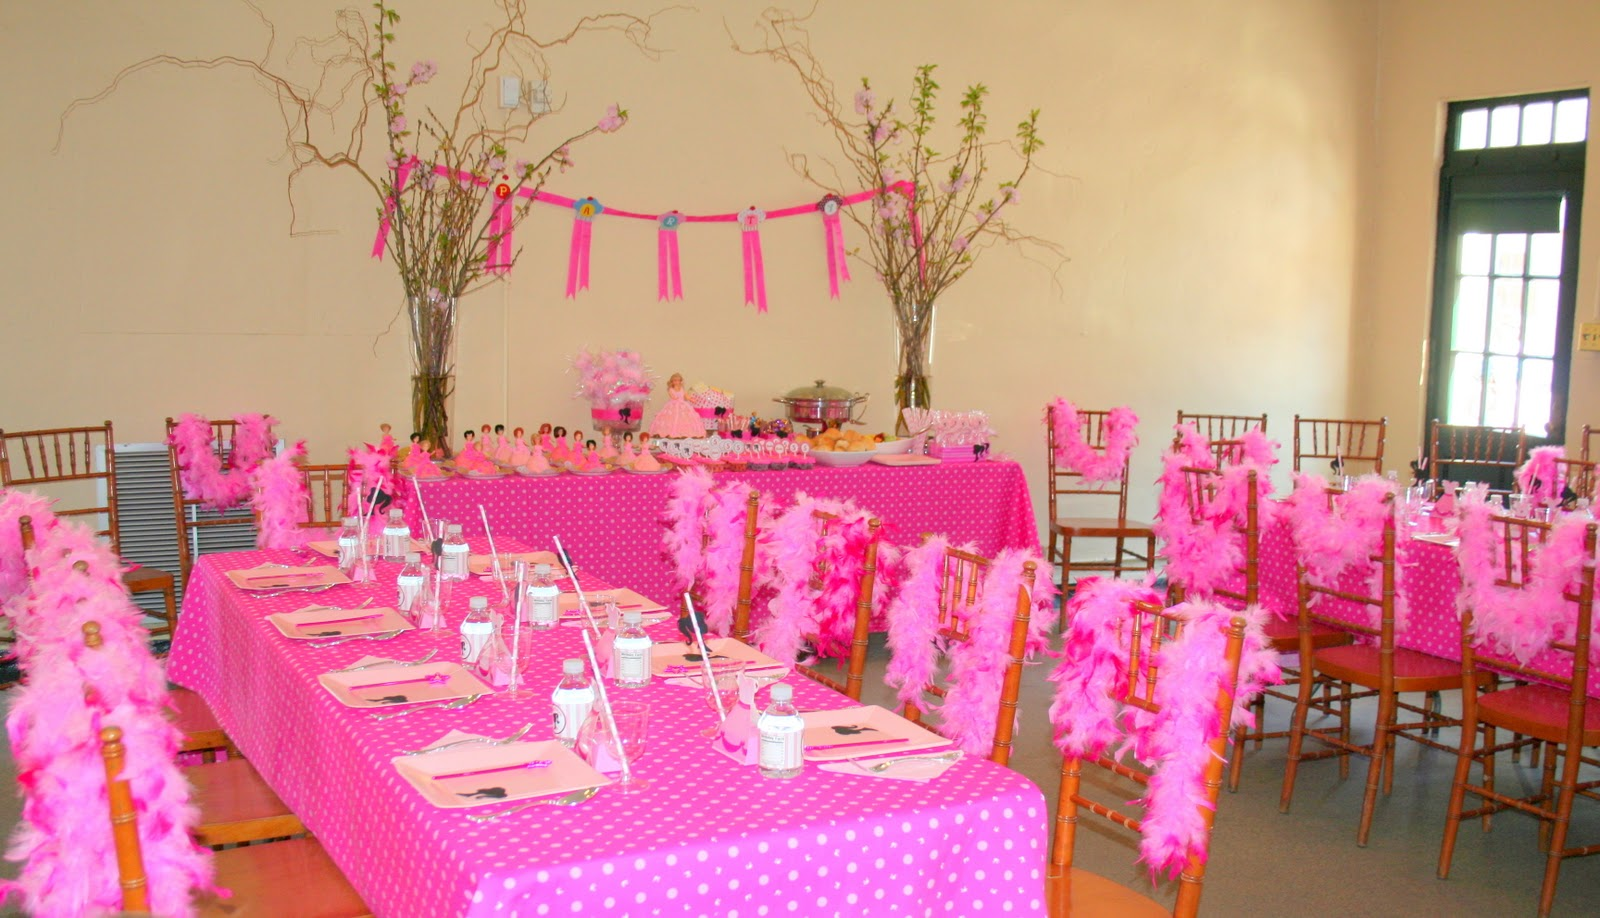 Swanky Chic Fete Pink Barbie Party A 5th Birthday Party